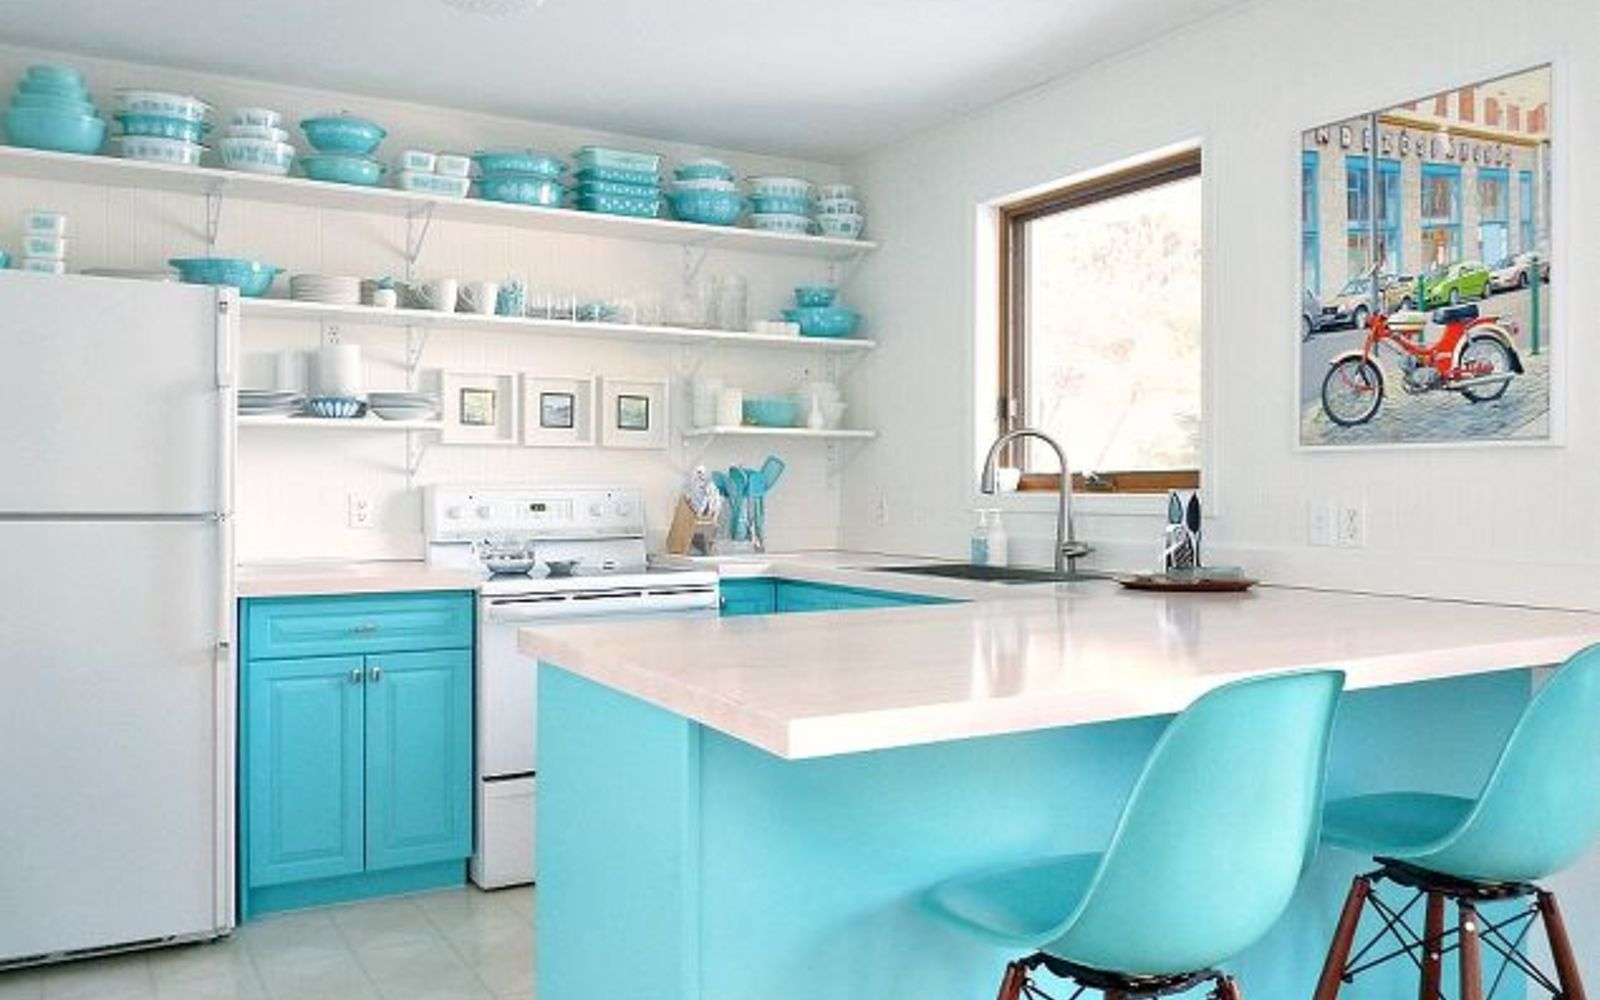 s 13 kitchen paint colors people are pinning like crazy, kitchen design, paint colors, Incorporate some turquoise into your decor